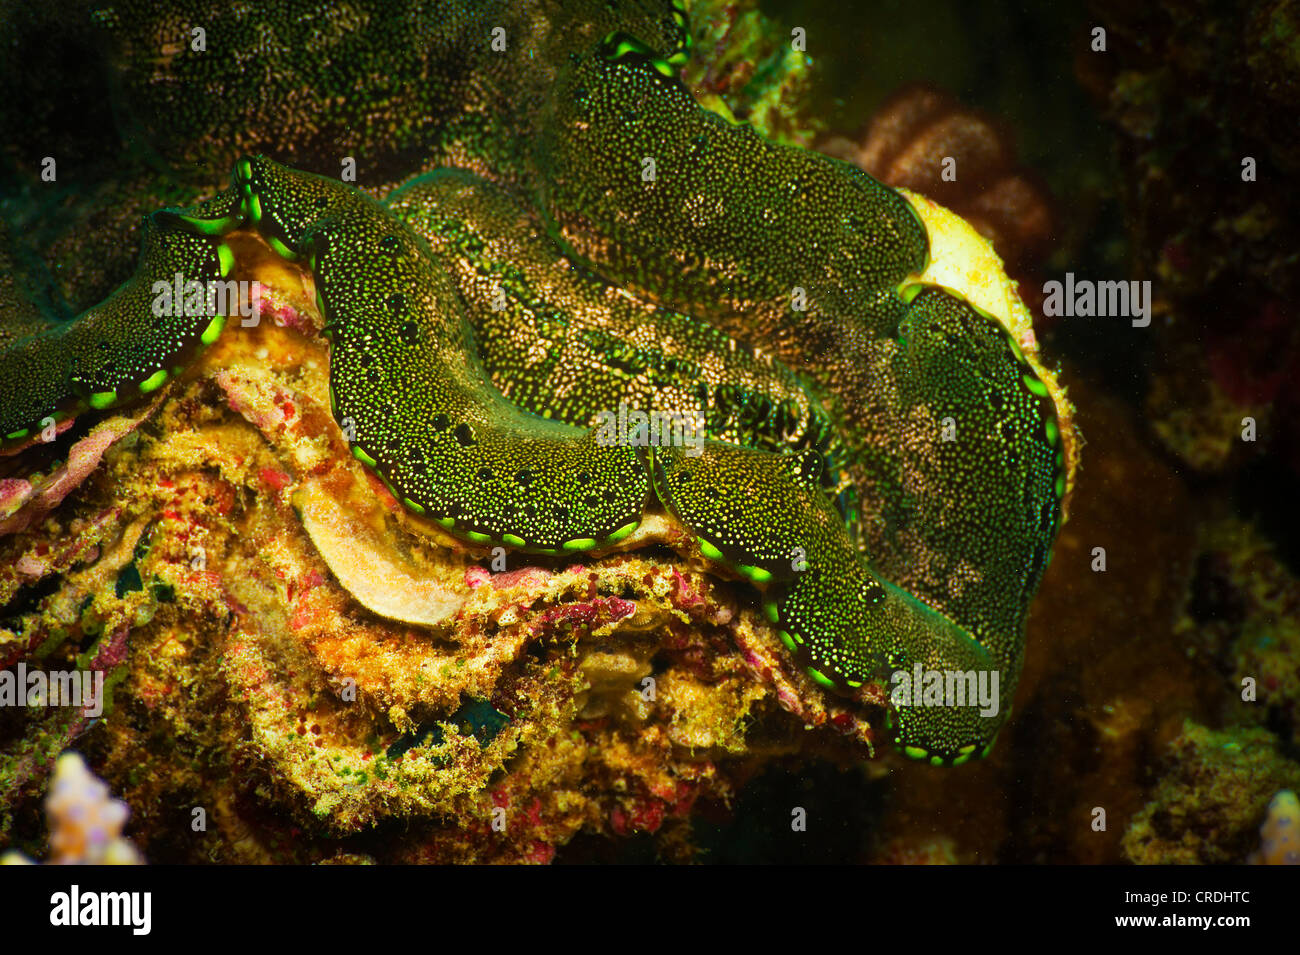 Giant clam (Tridacna gigas) (IUCN red list - VU - vulnerable) - Bivalves, Shells (Bivalvia) - Molluscs (Mollusca) - Stock Image